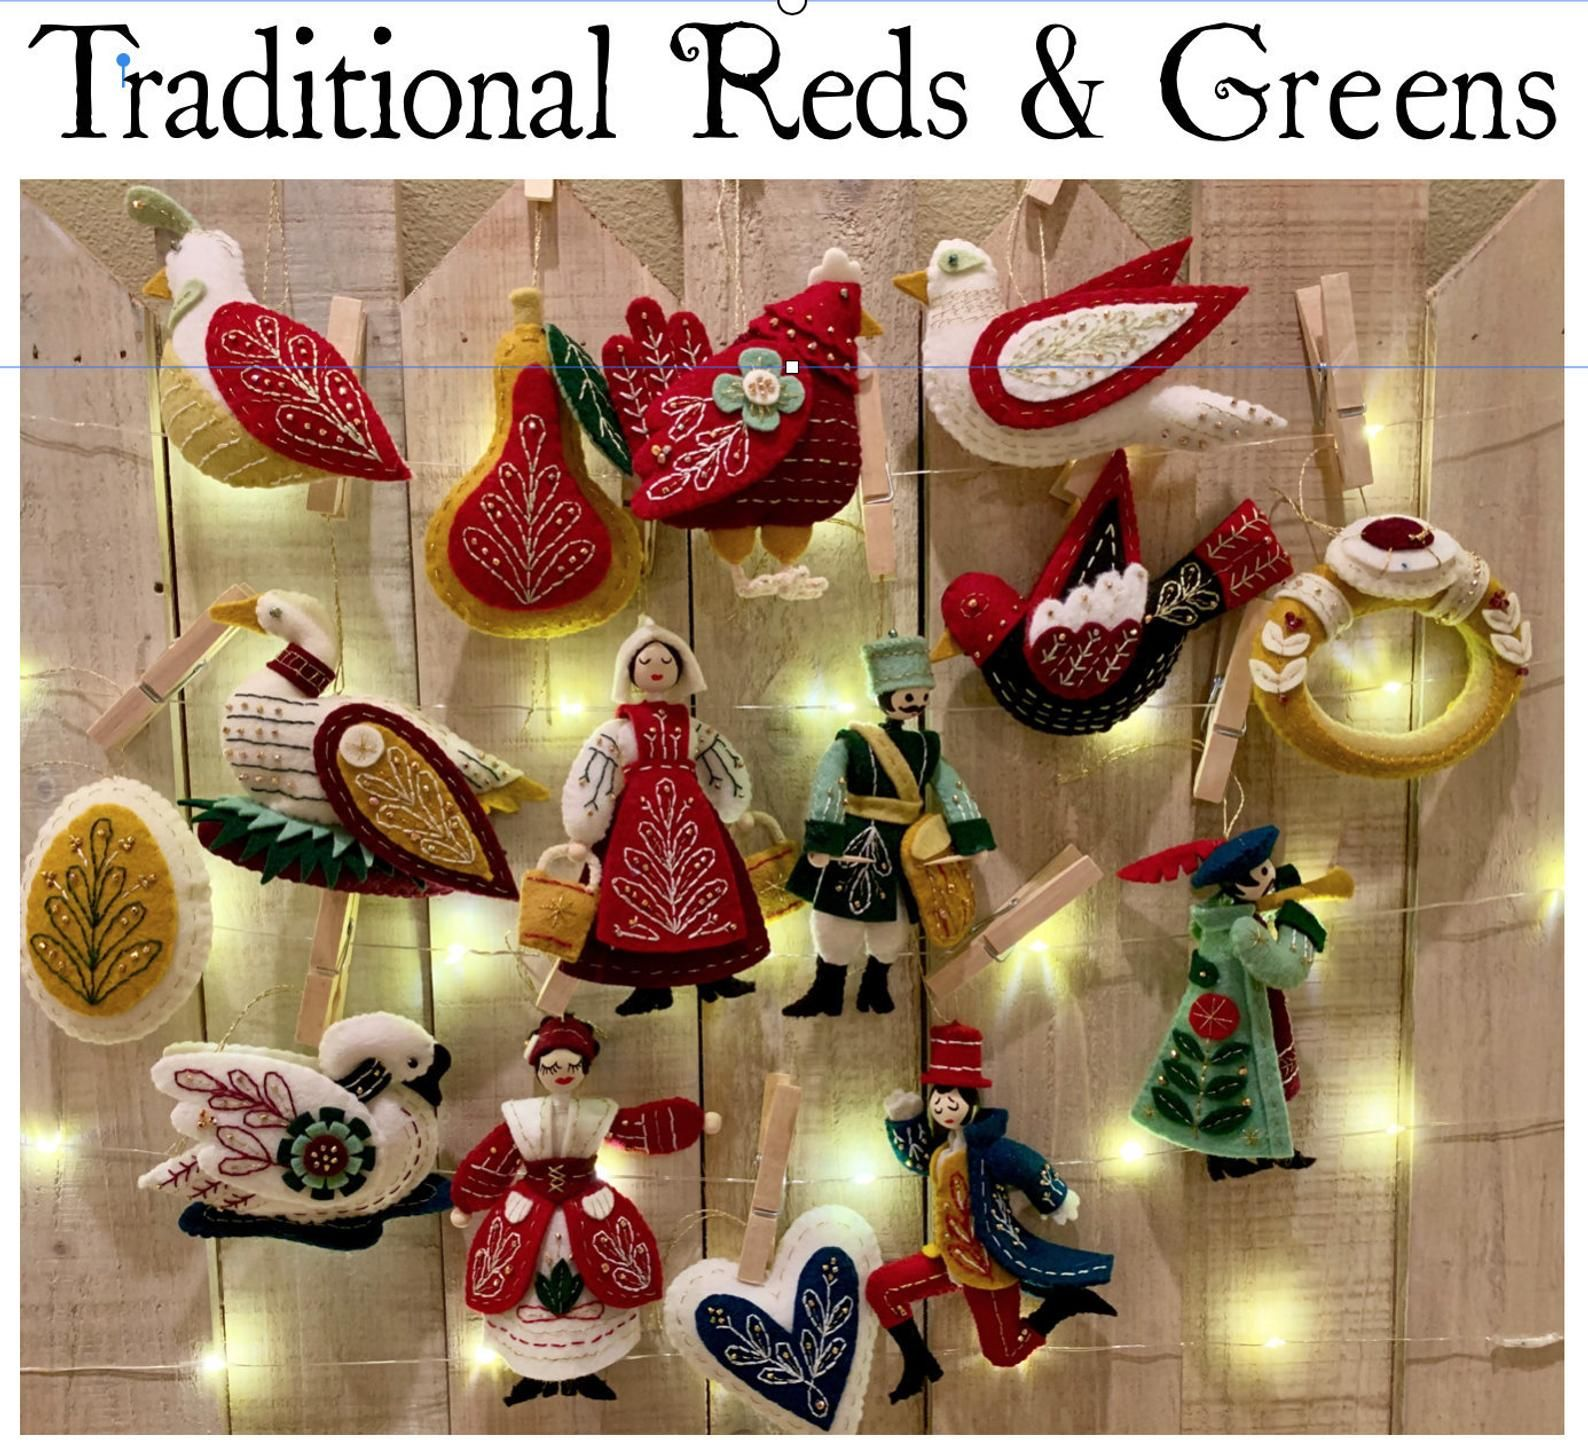 12 Days Of Christmas Ornaments Handmade Felt And Beaded Christmas Reds And Greens Set Of 15 Style 003 10 Weeks Production Time Please In 2021 Handmade Christmas Ornaments 12 Days Of Christmas Christmas Ornaments